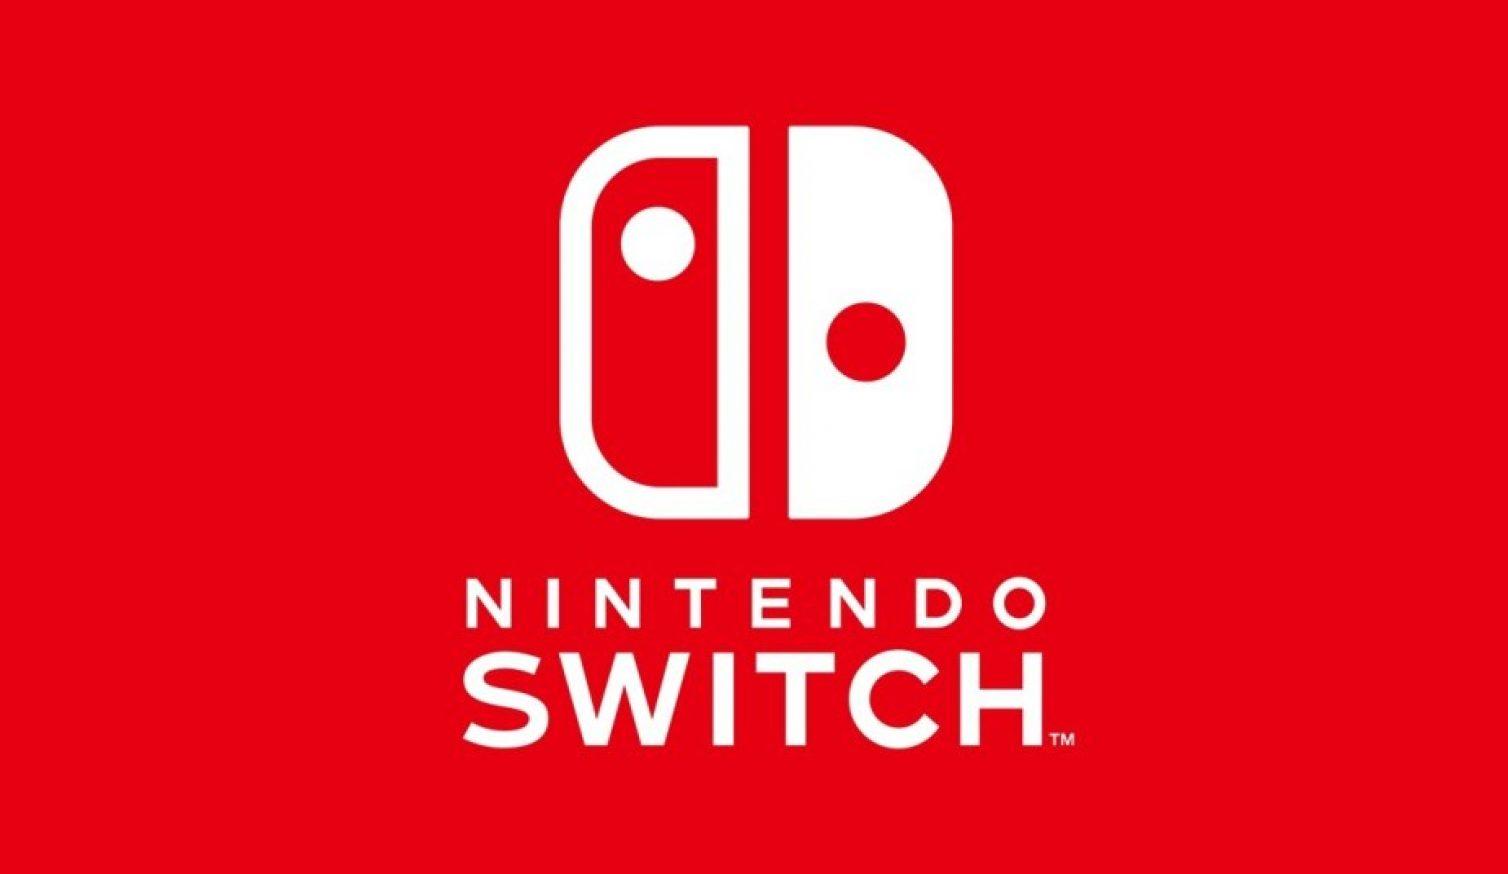 Nintendo Switch: What We Know